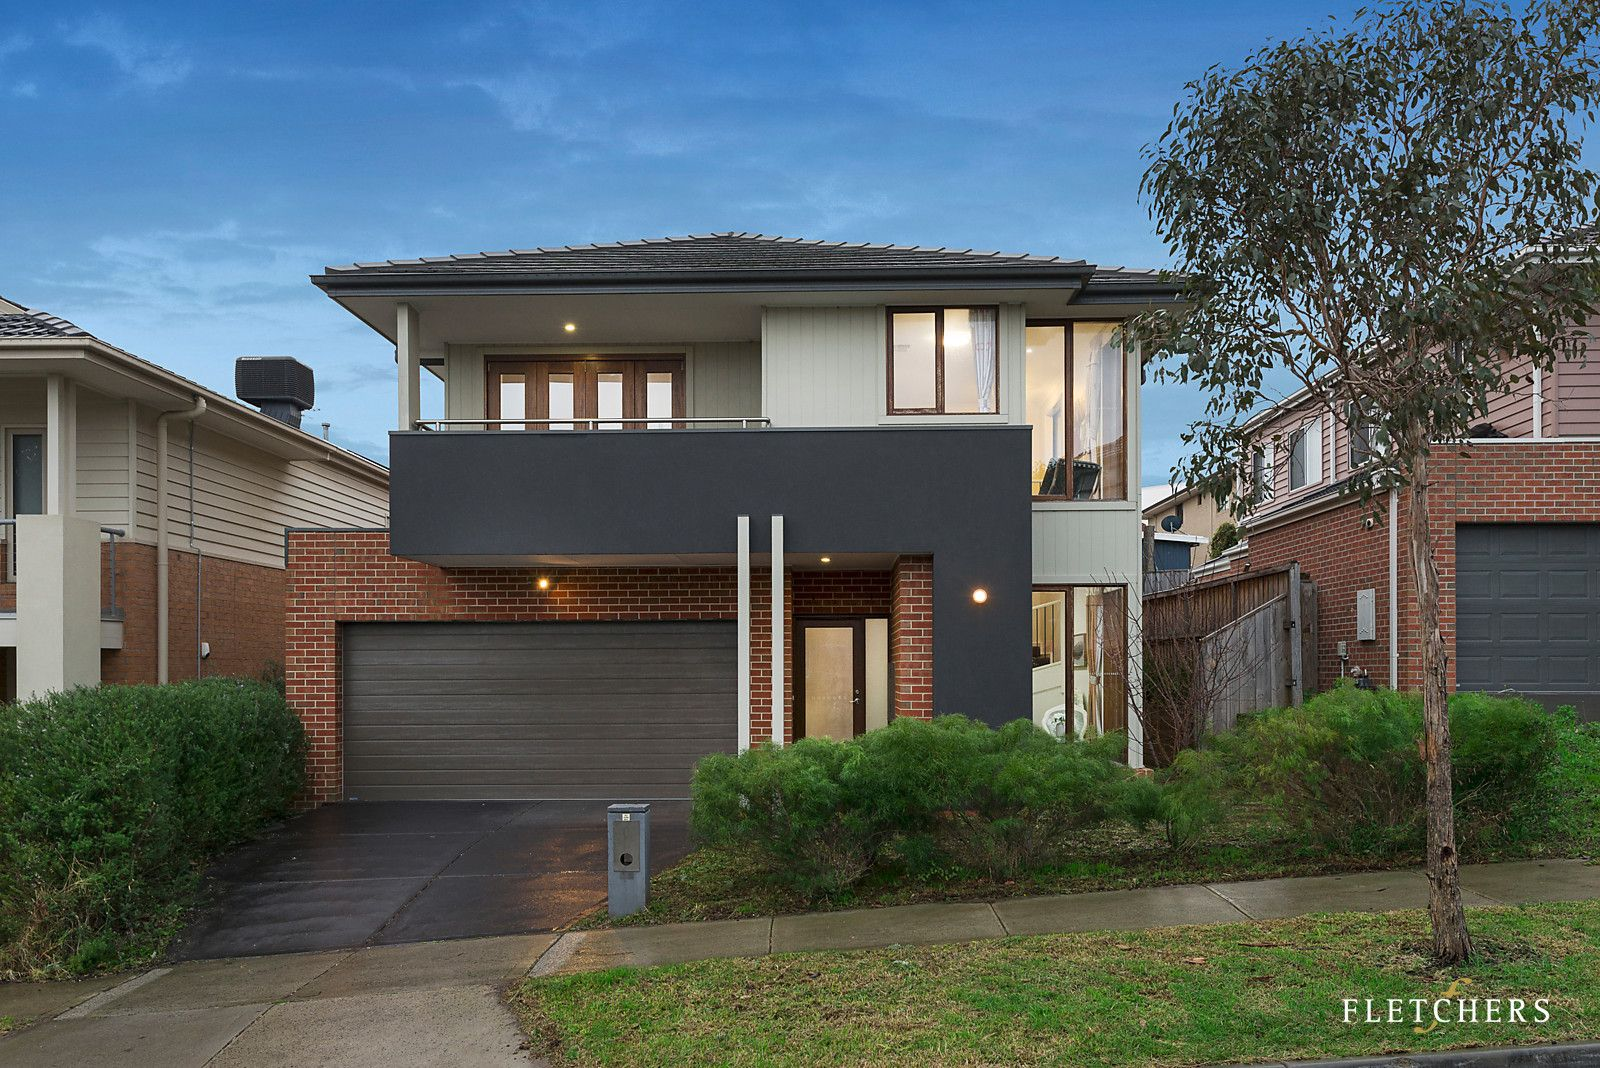 Sold 14 Spectrum Way, Coburg North VIC 3058 on 17 Aug